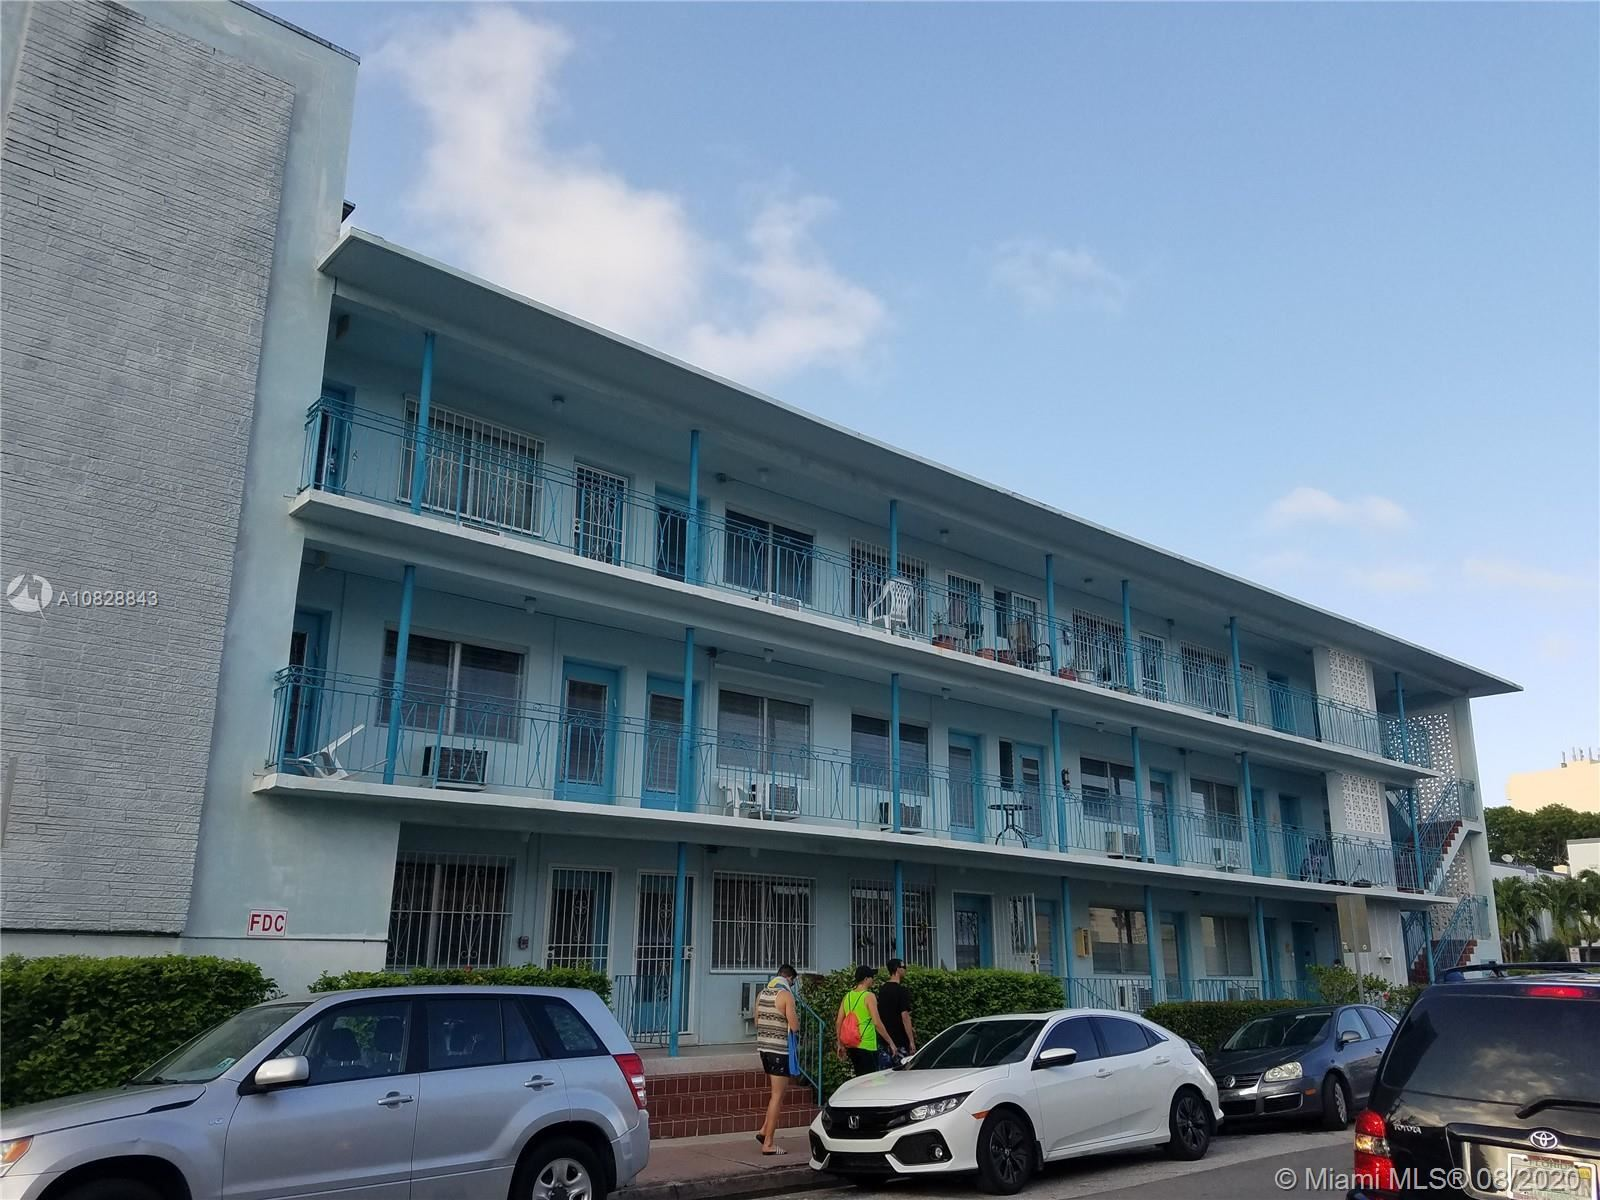 1004 Pennsylvania Ave #21, Miami Beach, FL 33139 - #: A10828843